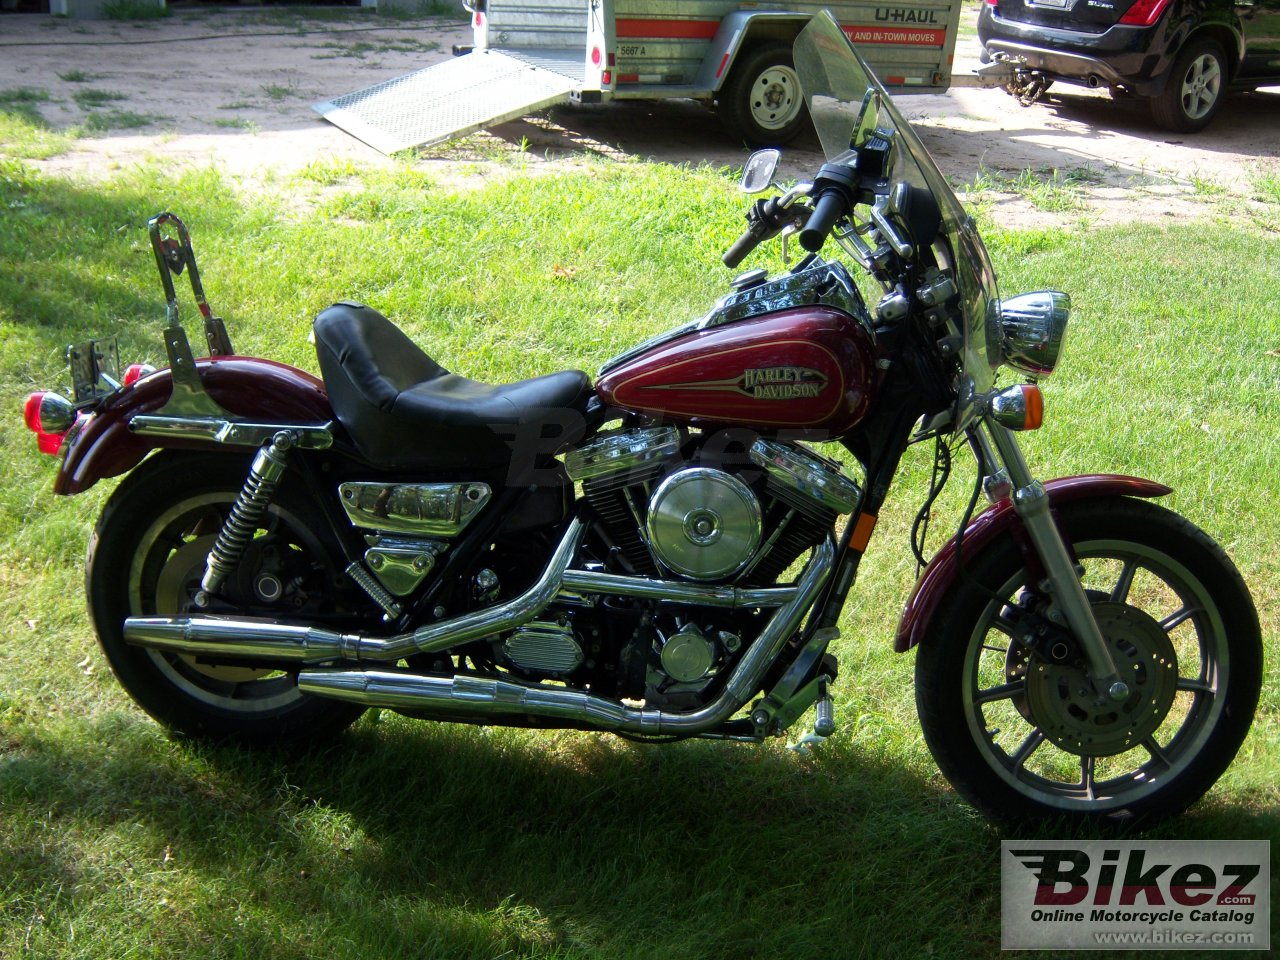 Big  1340 low rider convertible picture and wallpaper from Bikez.com